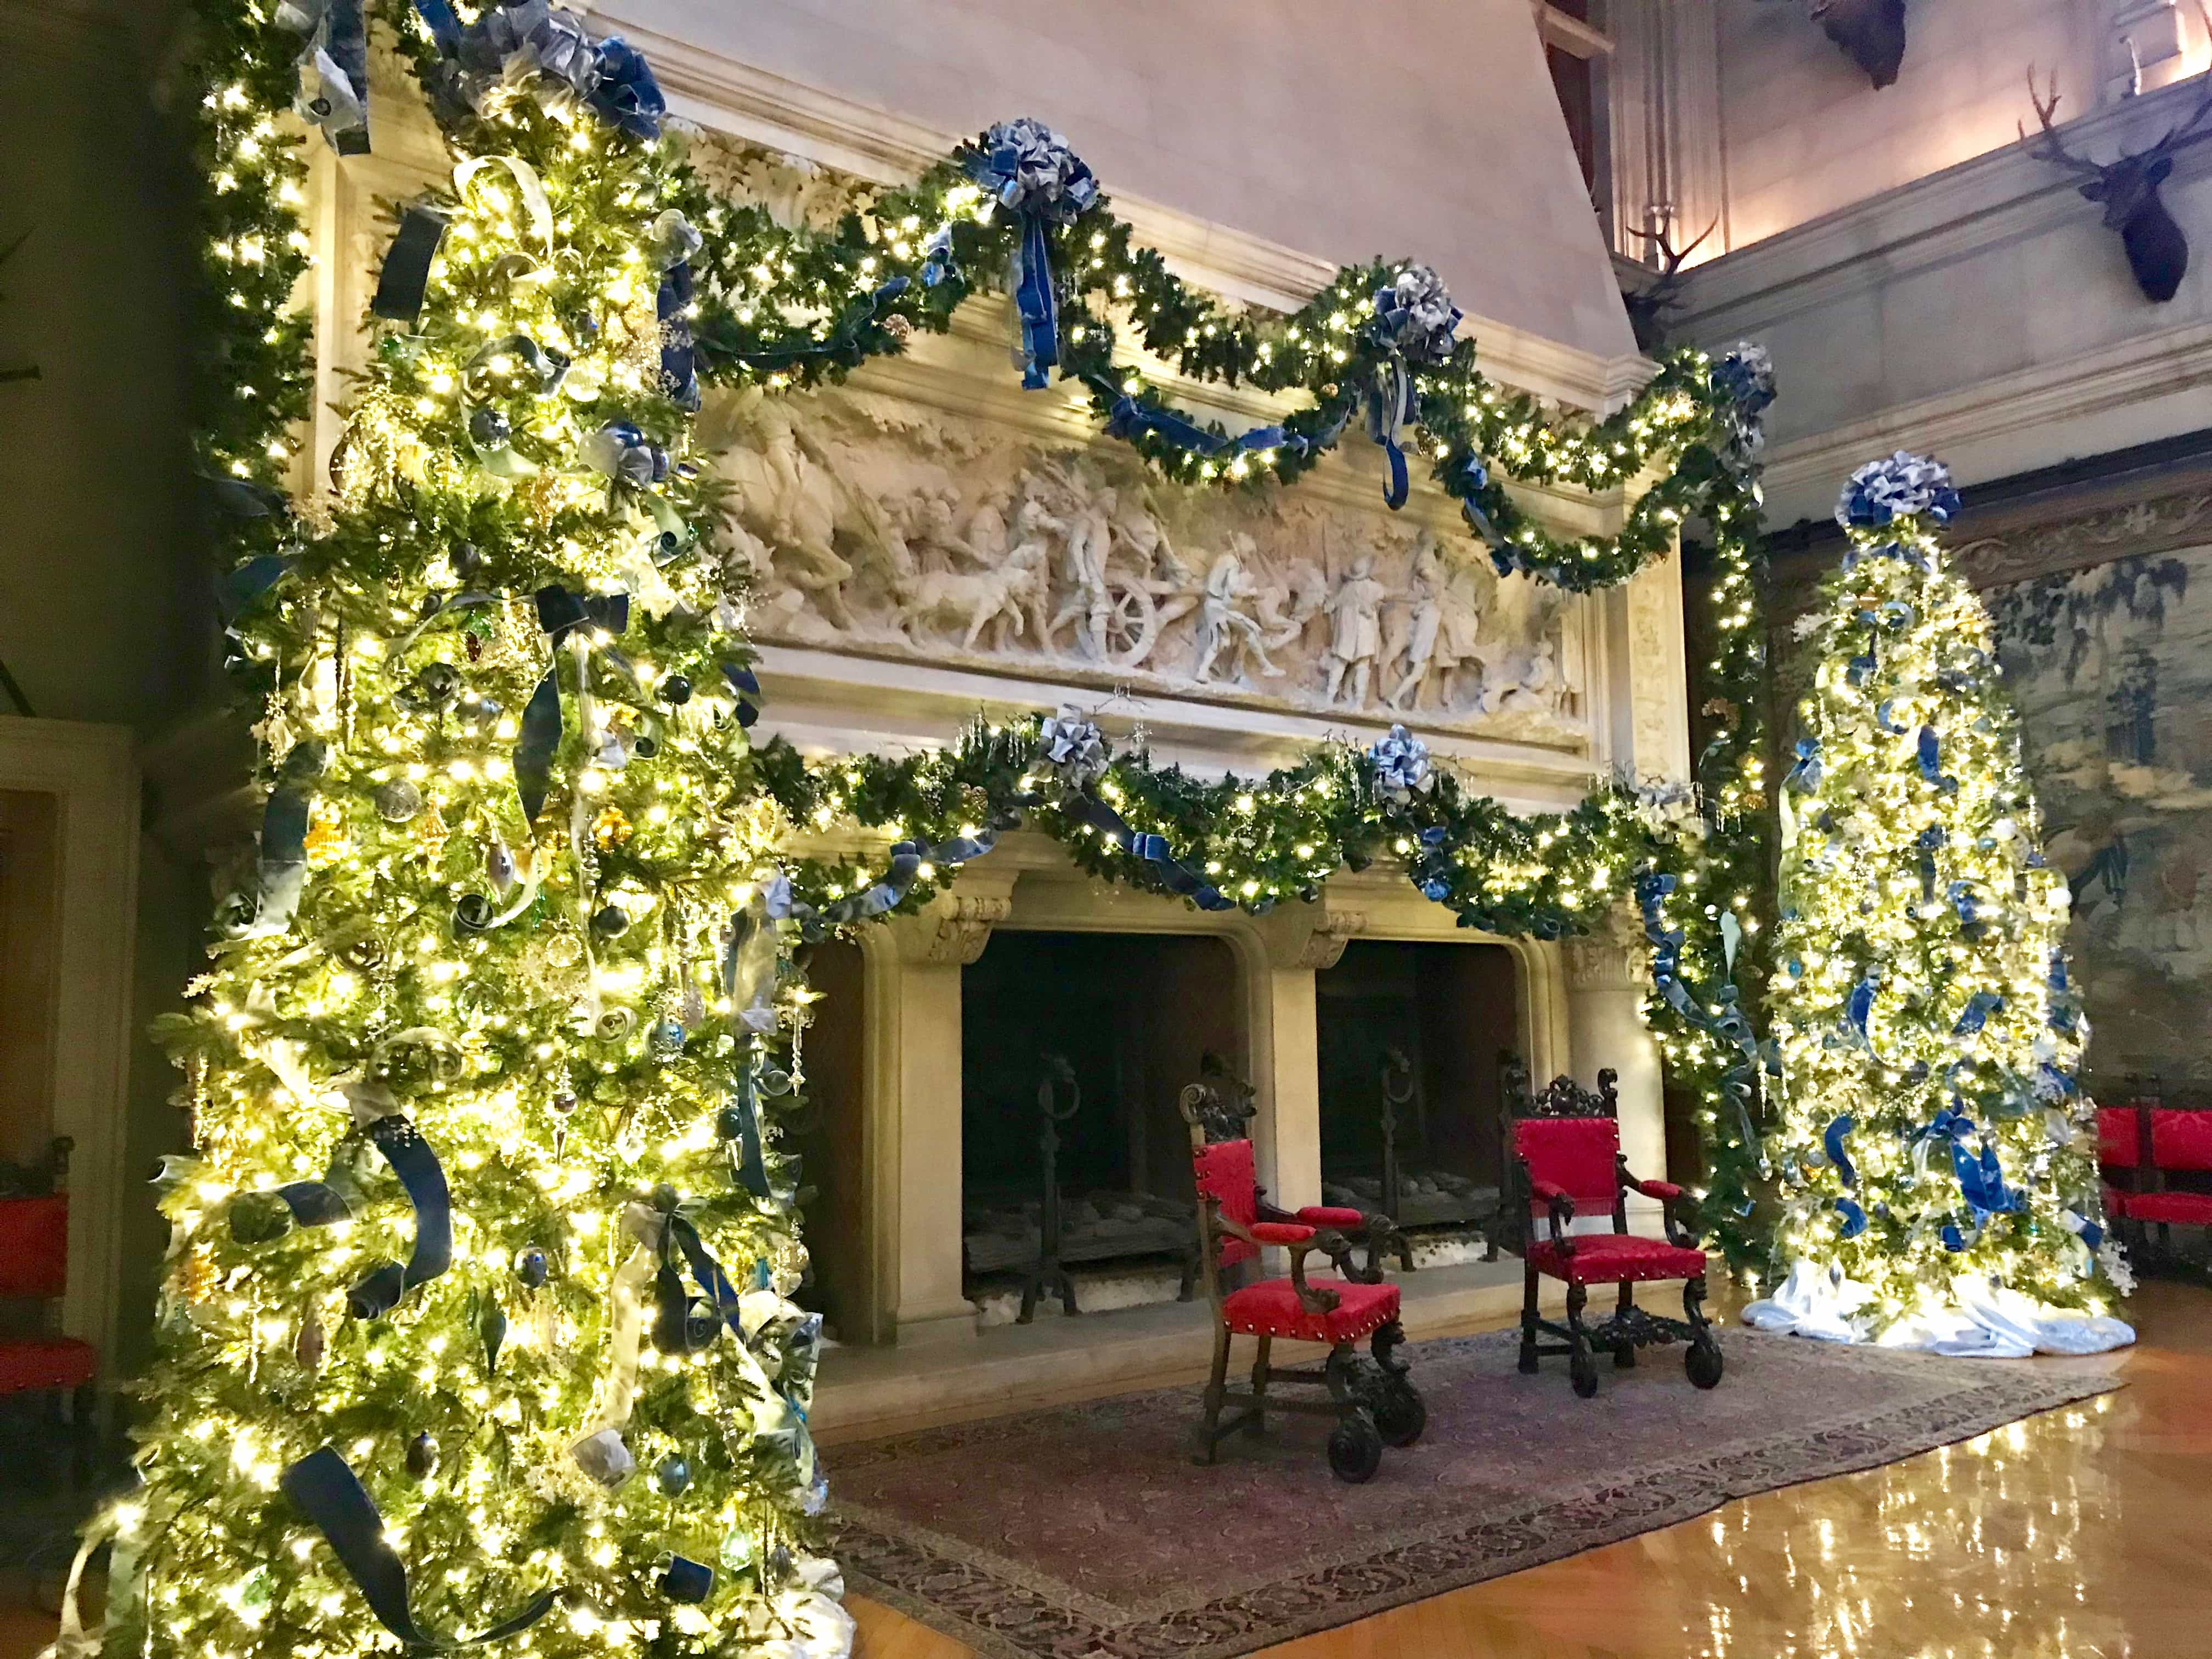 fireplace in dining room decorated for Christmas at the Biltmore House